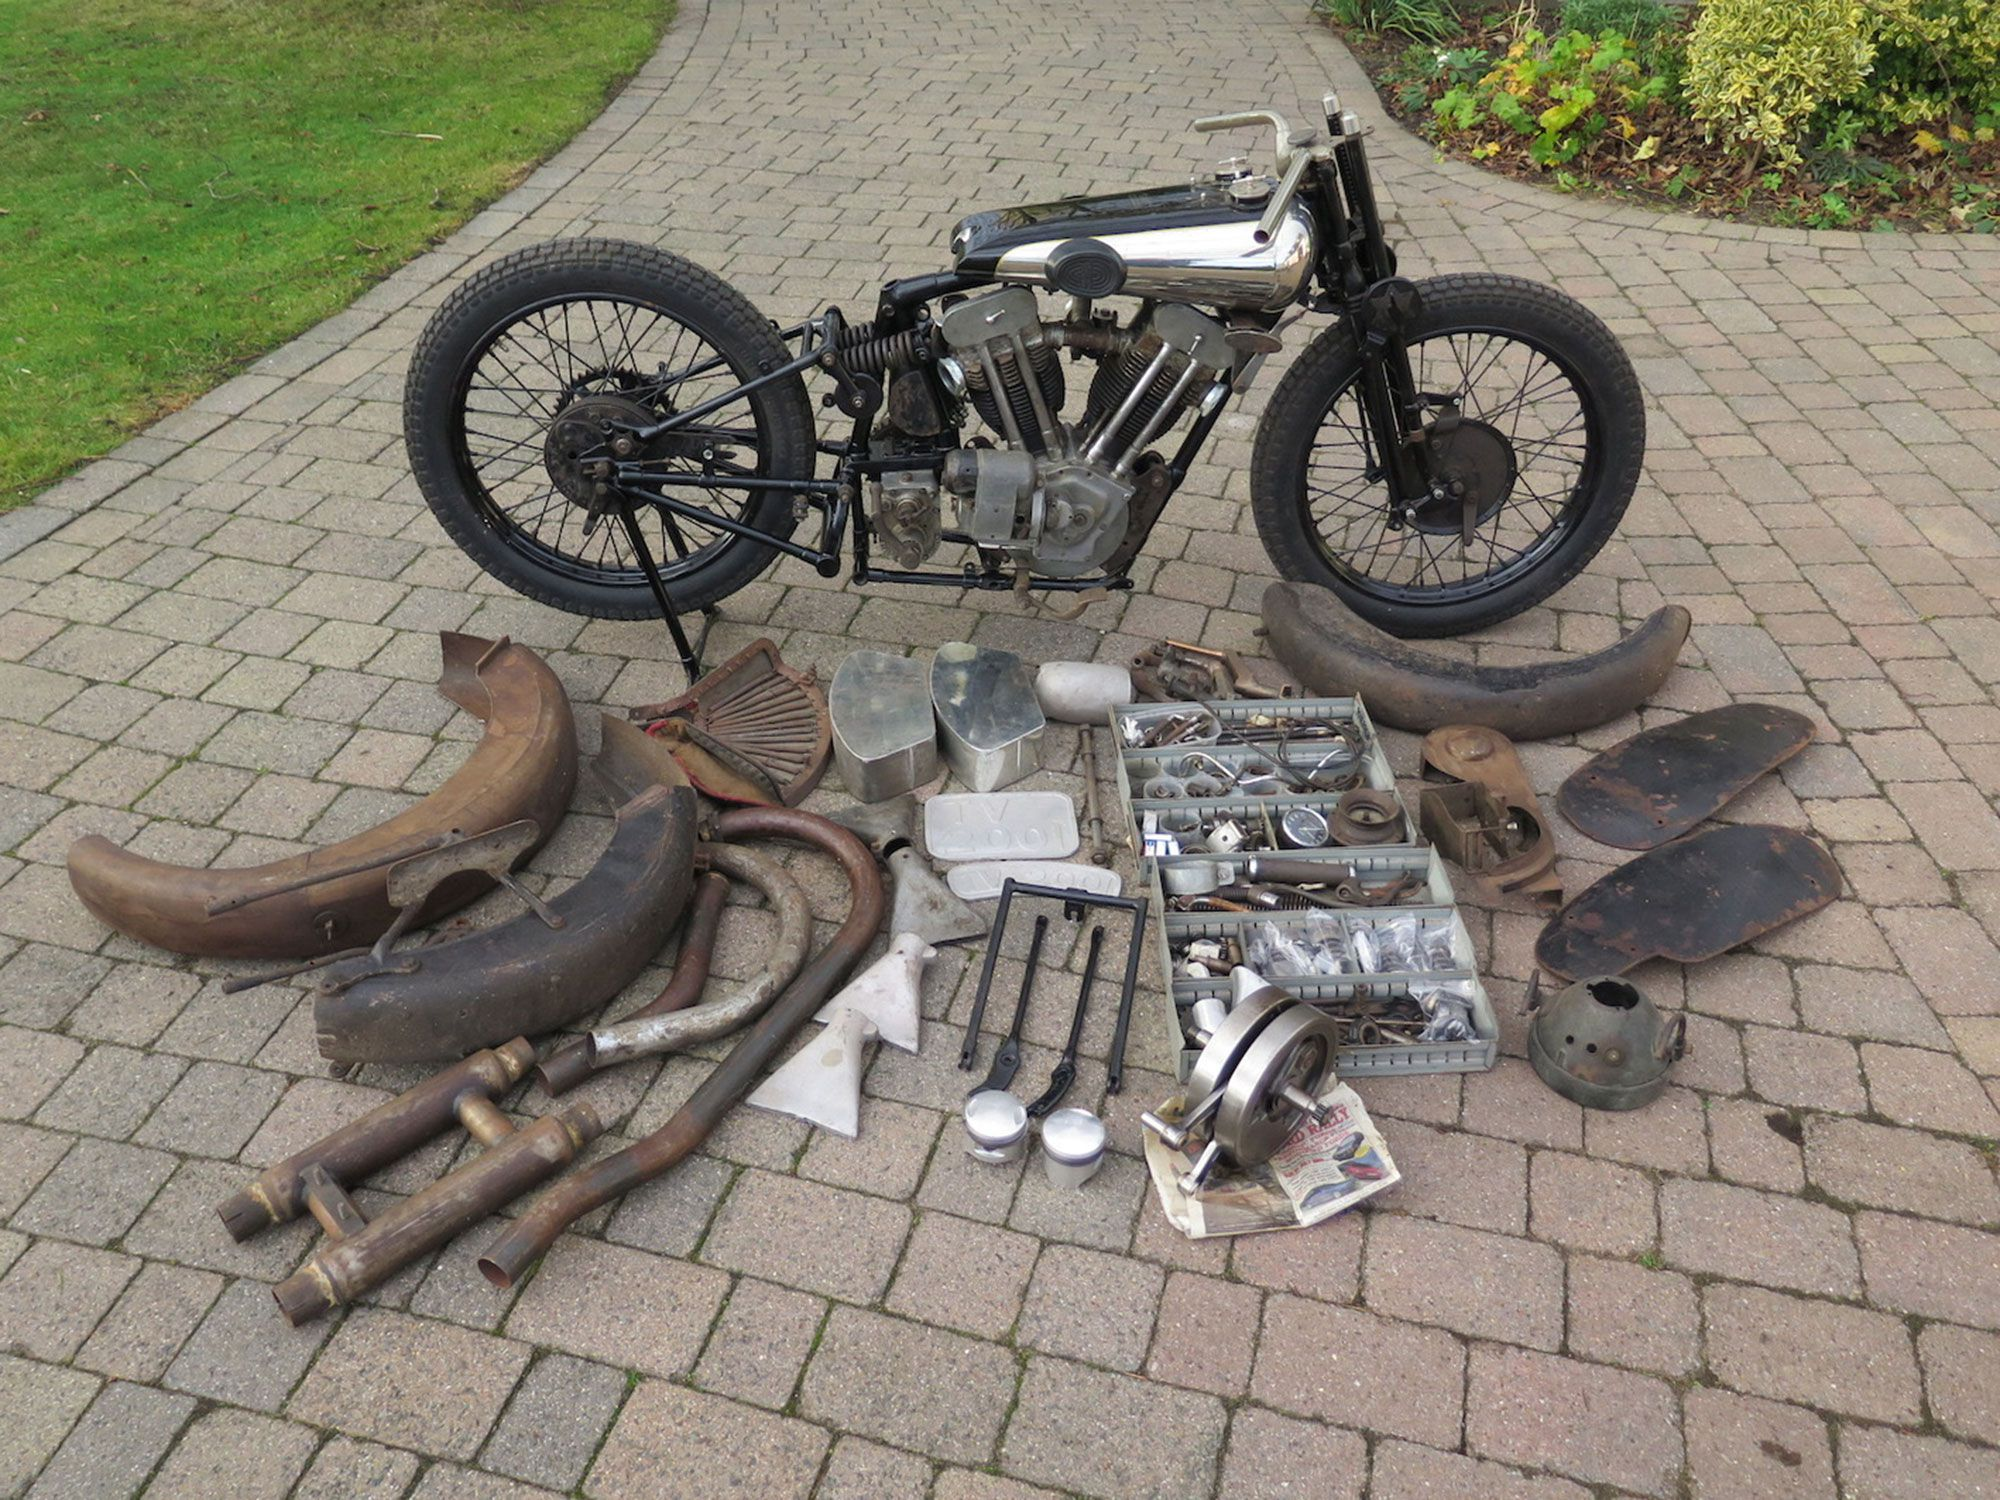 8. This rolling basket case was George Brough's personal SS100.